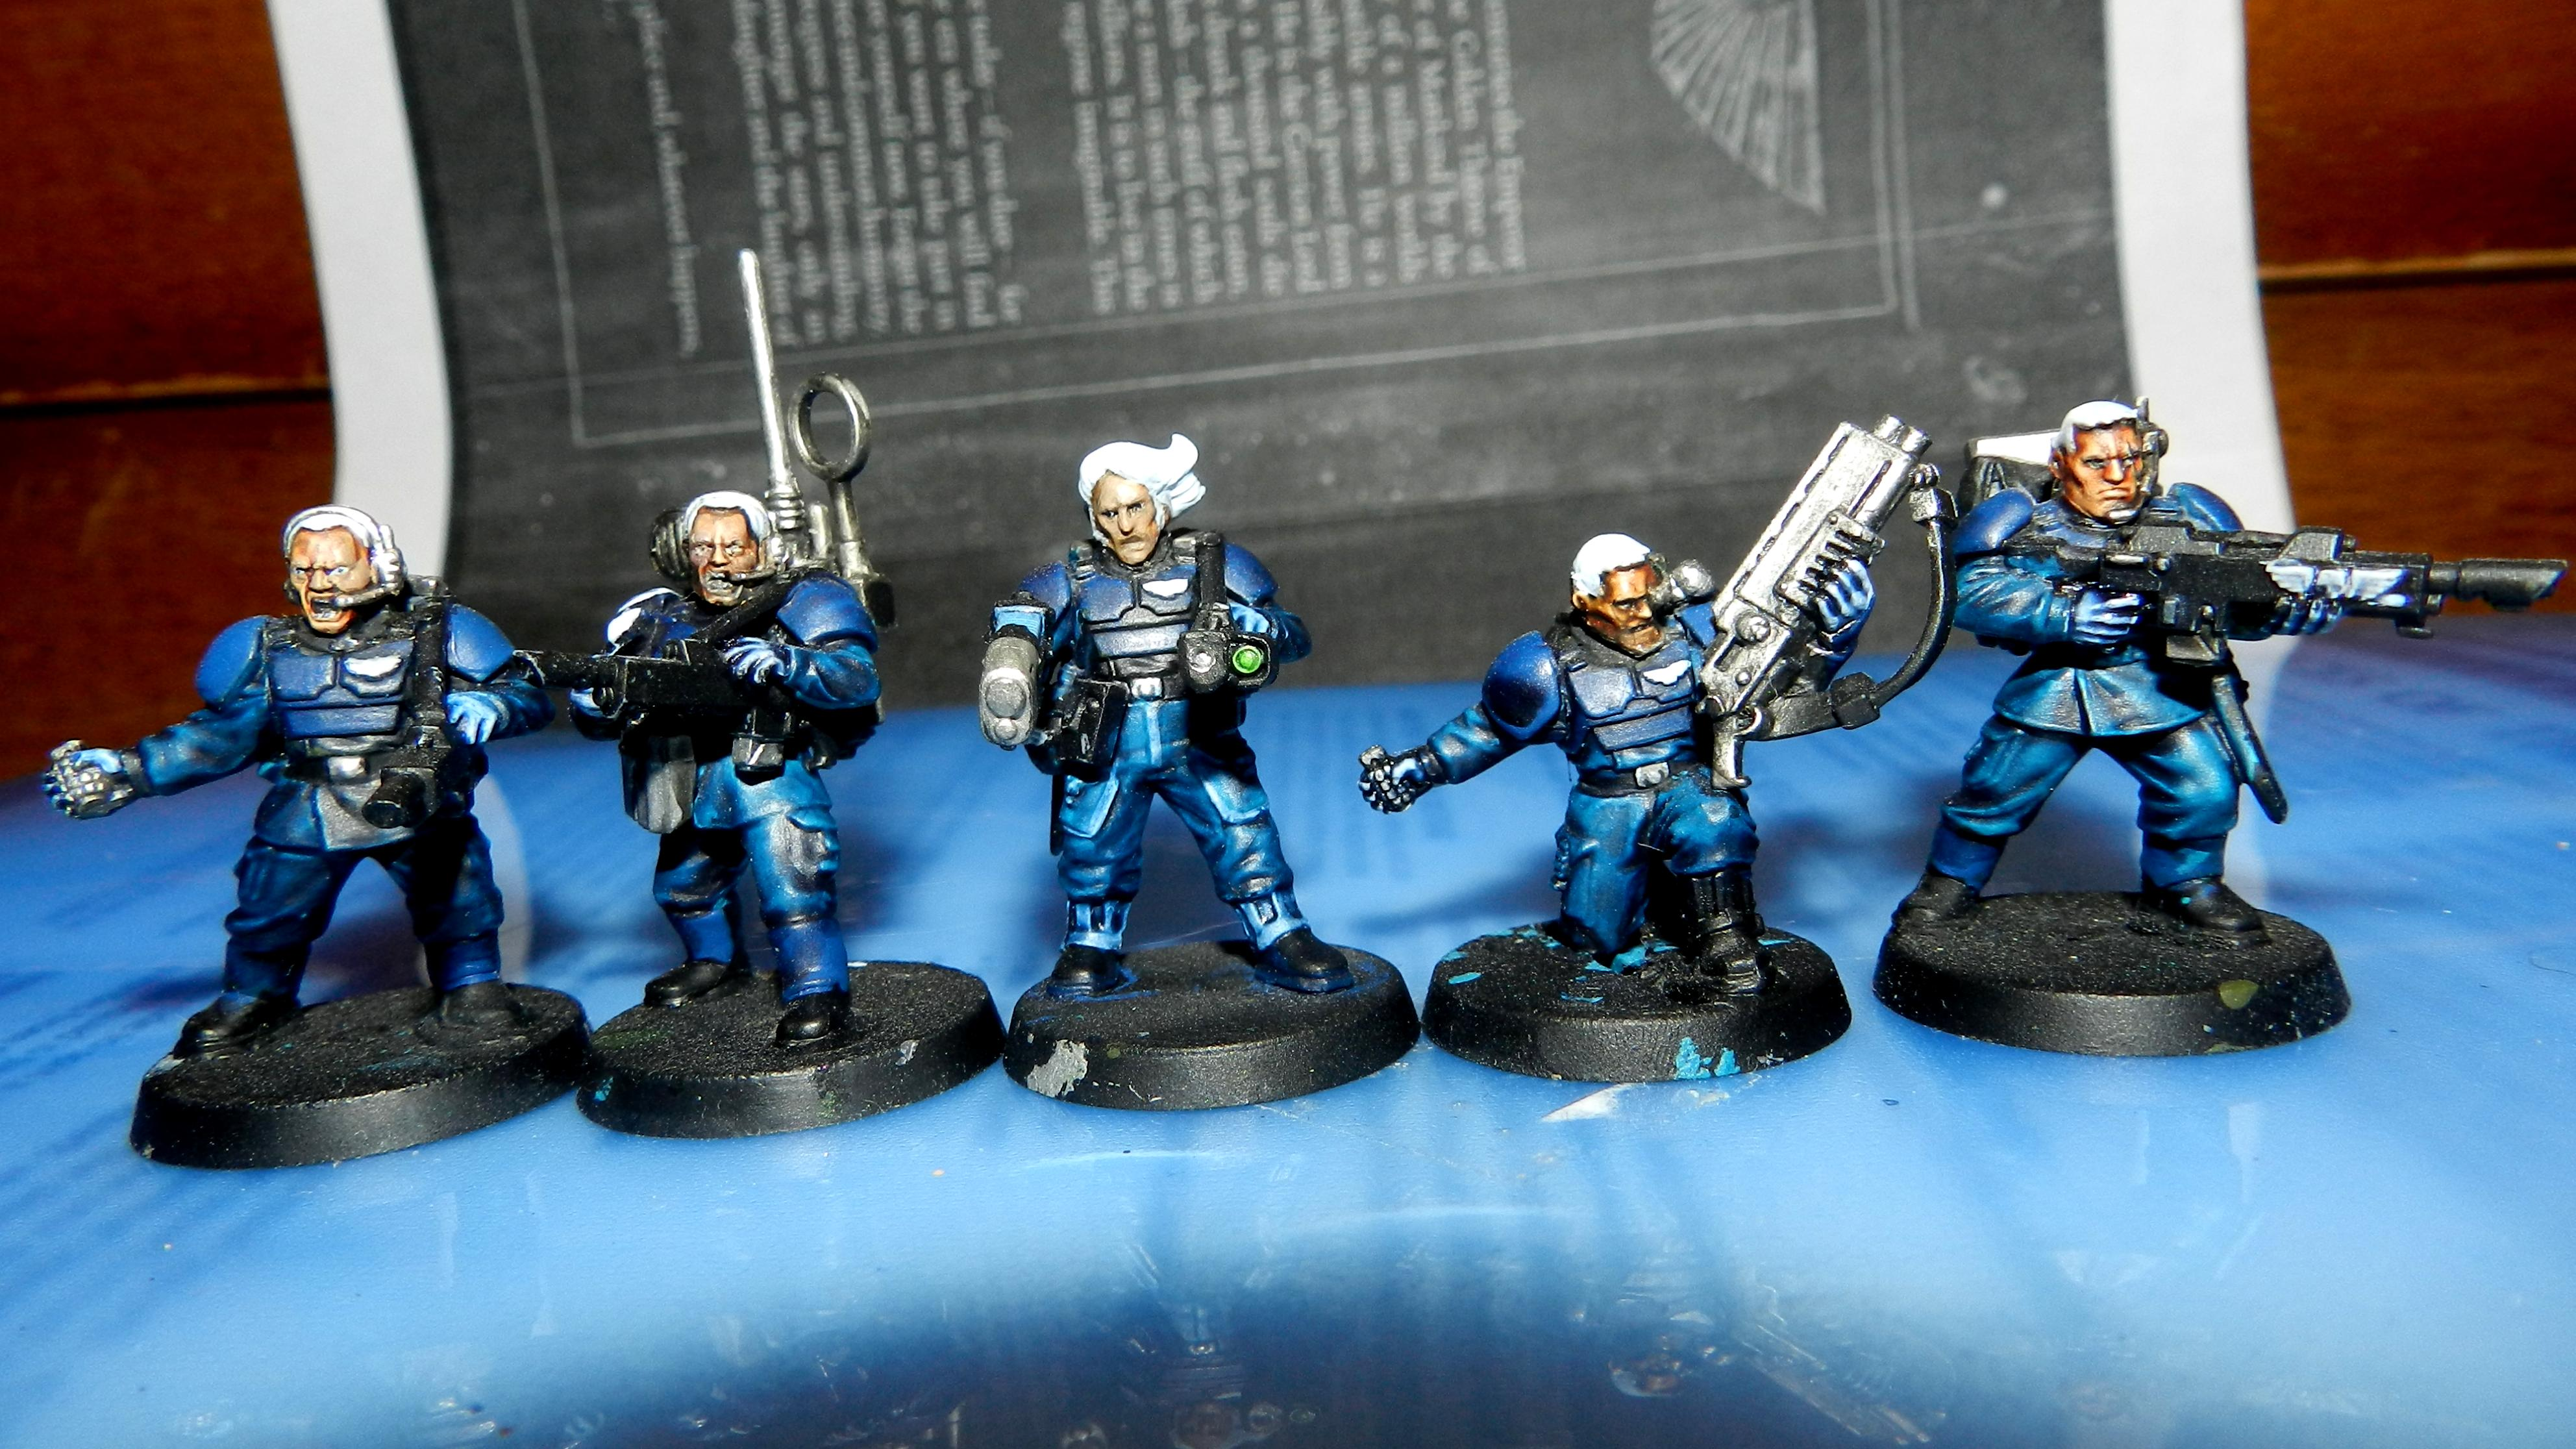 Adeptus Arbites, Cadians, Conversion, Guardsmen, Imperial Guard, Plasma Gun, Shotgun, Urban, Veteran, Warhammer 40,000, Work In Progress